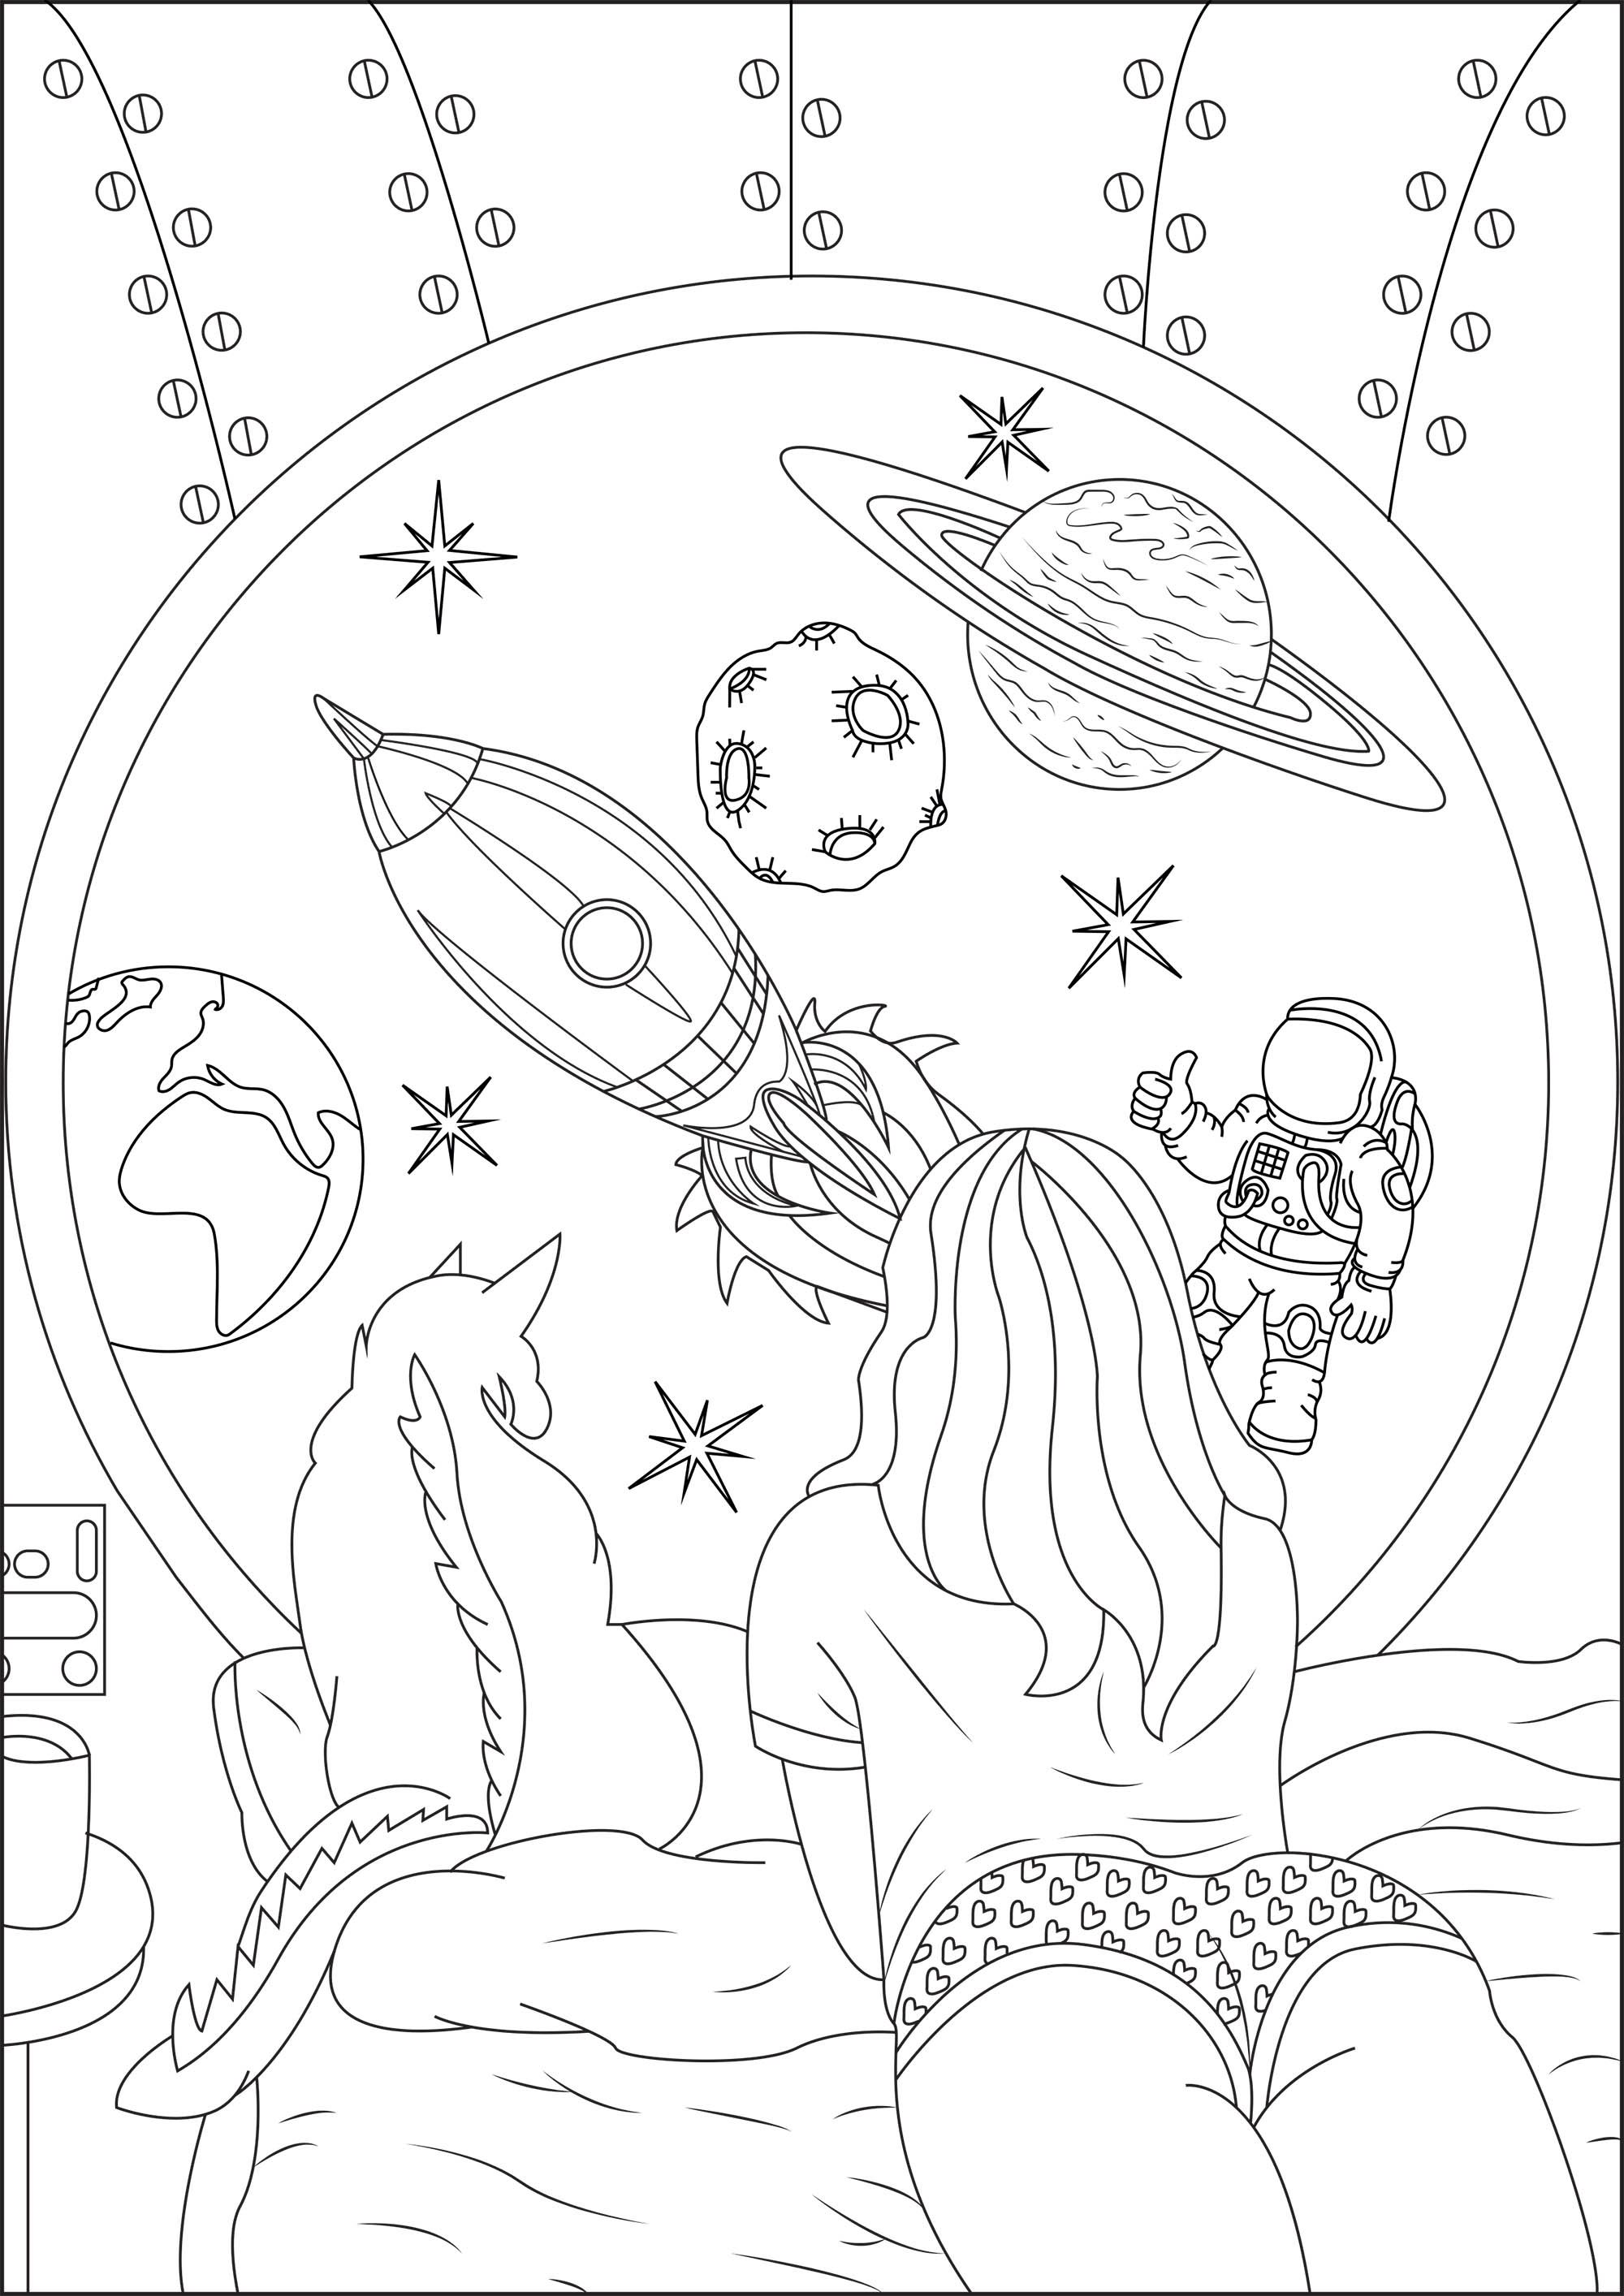 Omeletozeu Space Coloring Pages Cute Coloring Pages Detailed Coloring Pages